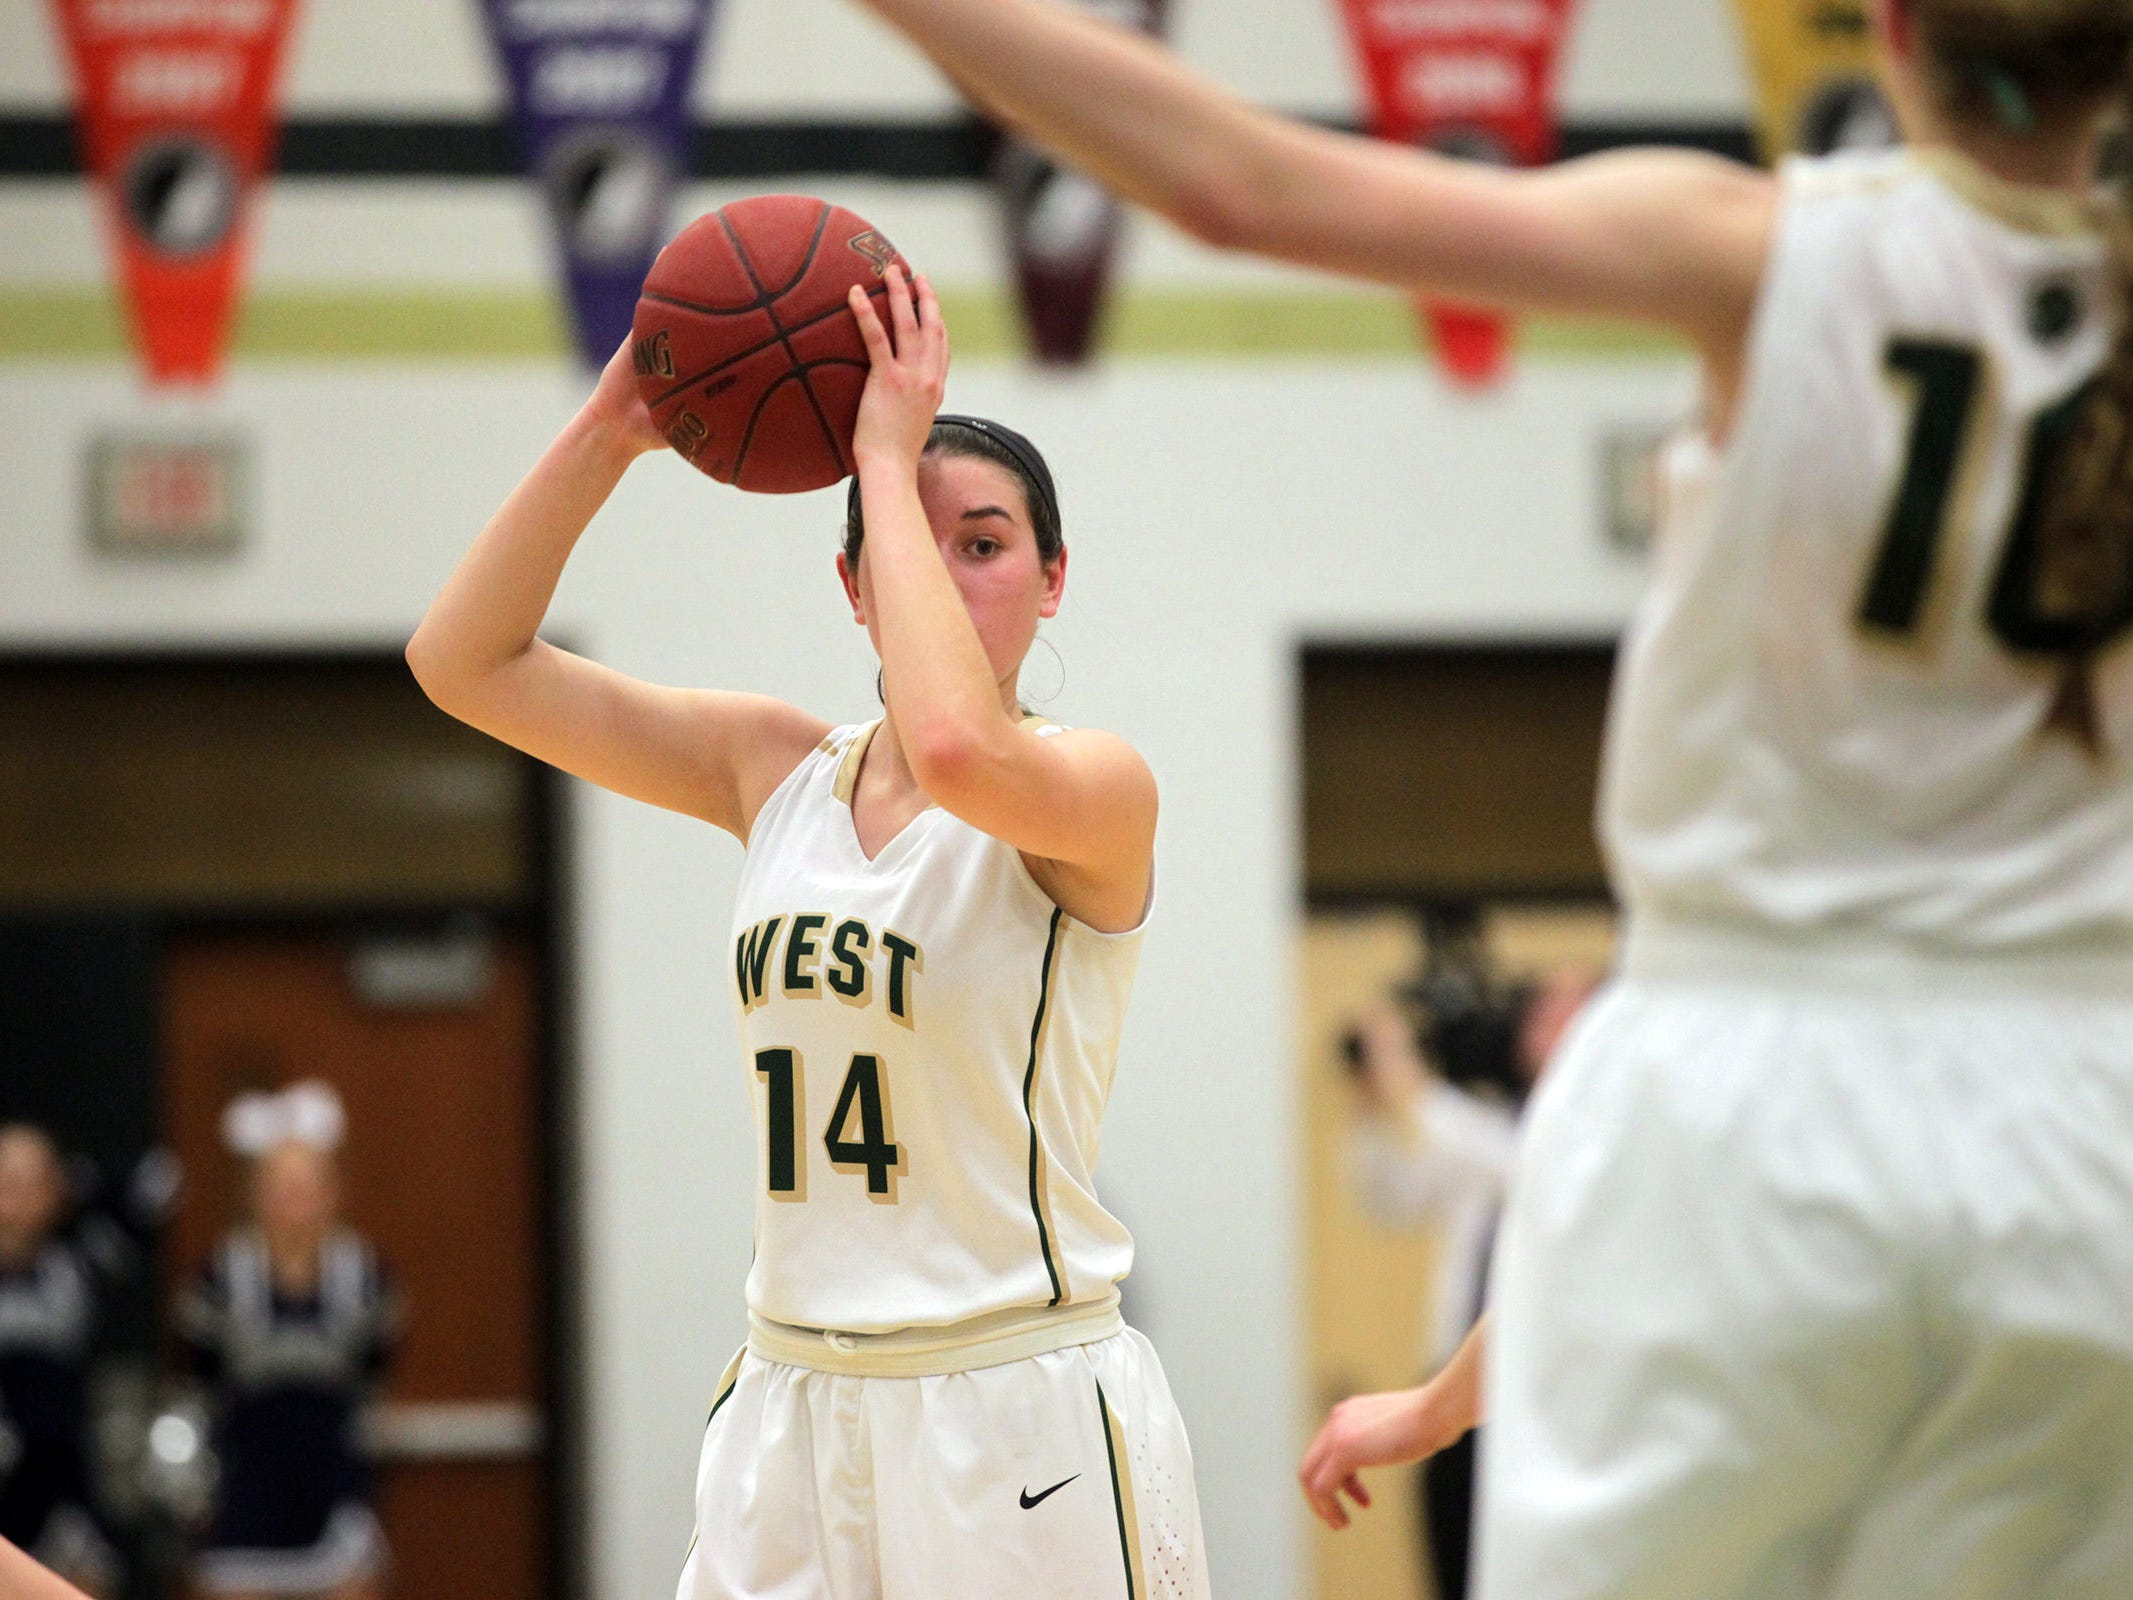 West High's Dani Craig looks for an open teammate during the Women of Troy's Class 5A regional final against Pleasant Valley on Tuesday, Feb. 24, 2015. West High won, 45-27, to advance to the state tournament. David Scrivner / Iowa City Press-Citizen